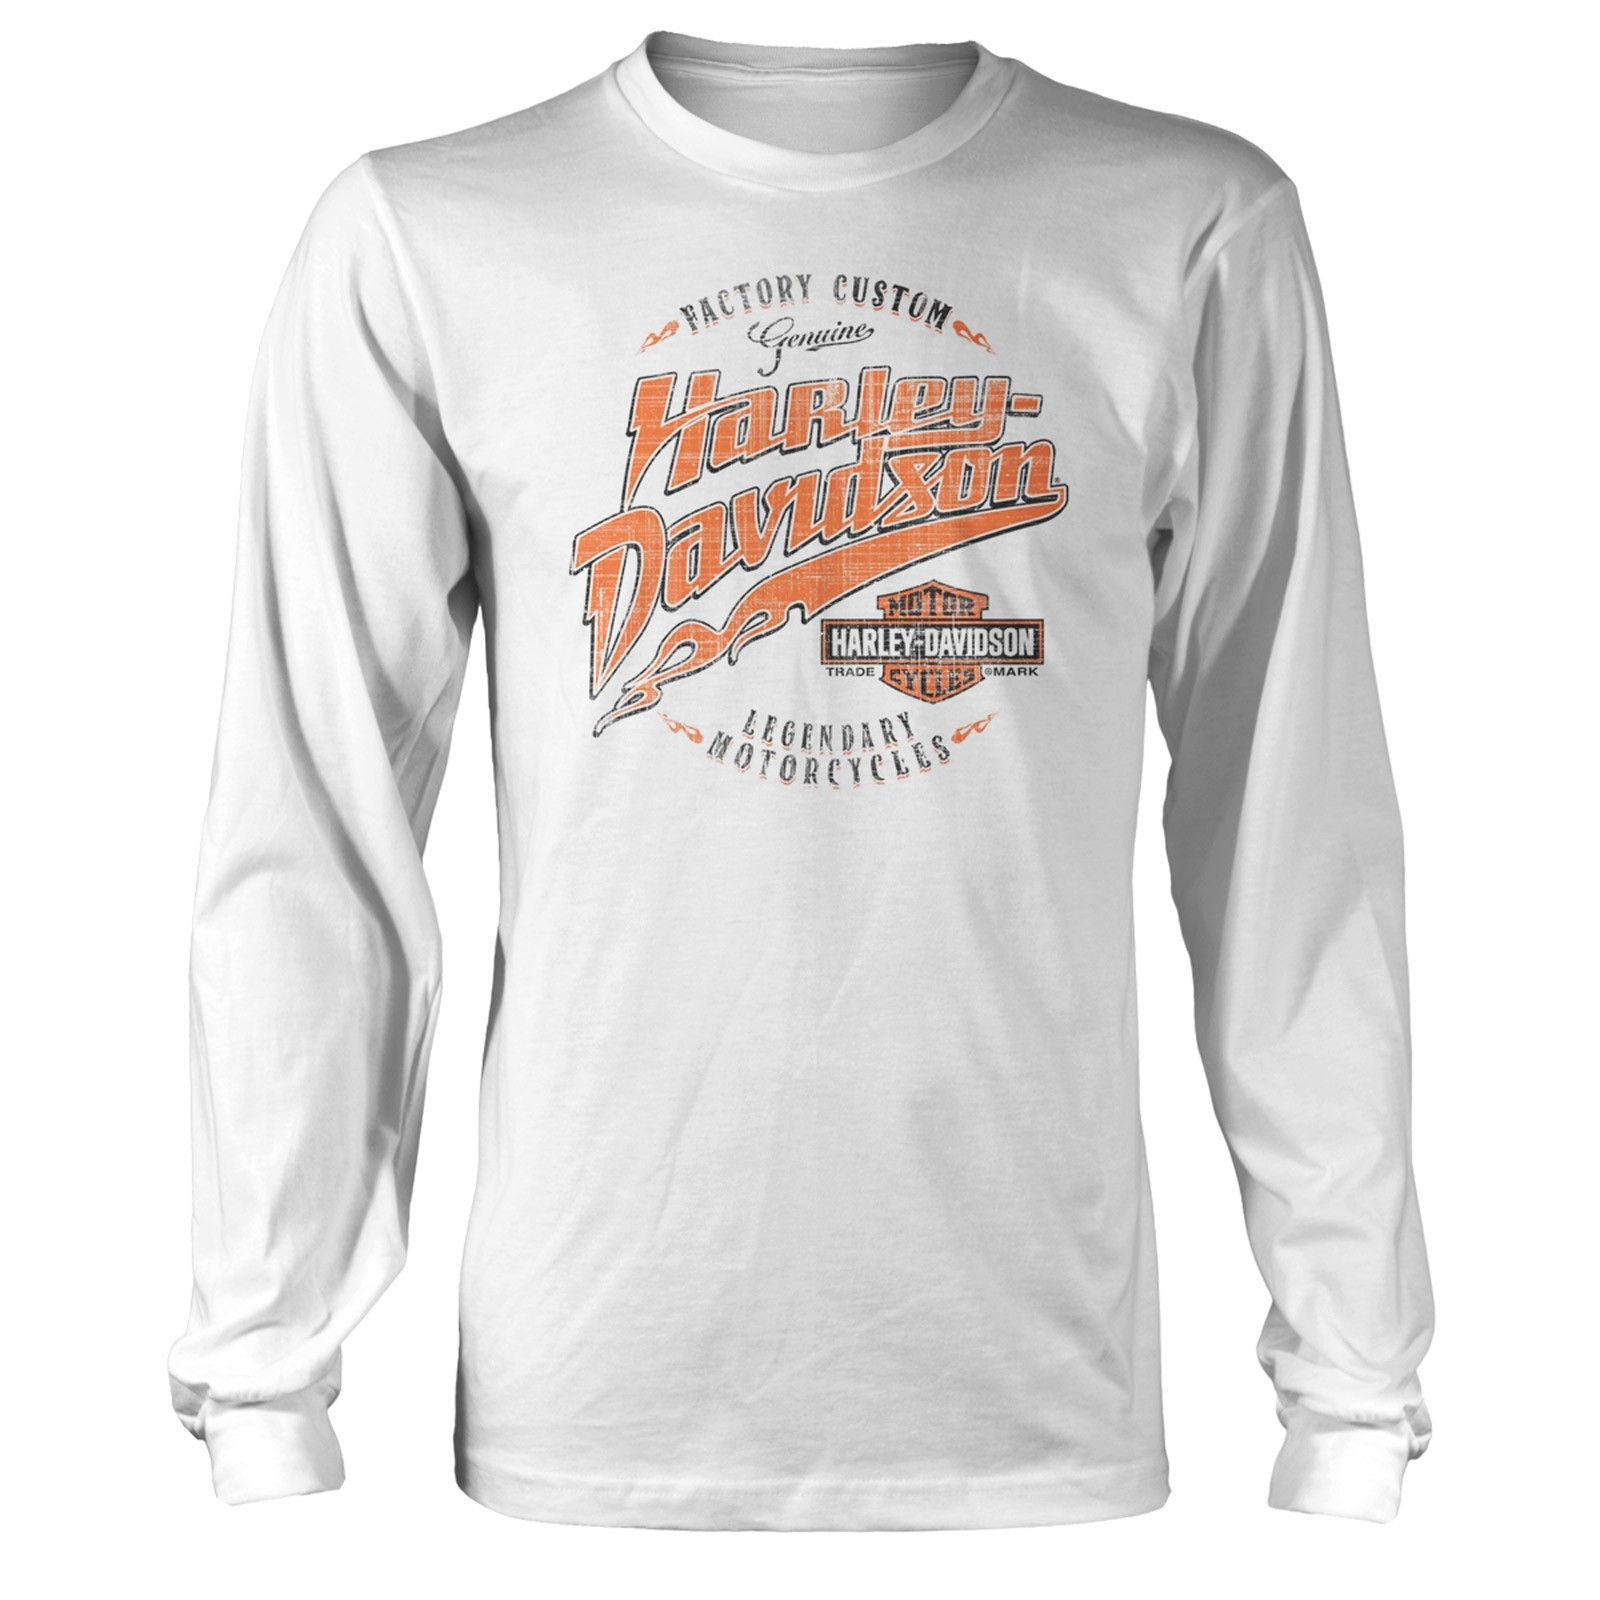 Men's Long-Sleeve Graphic T-Shirt - Camp Foster | Driven